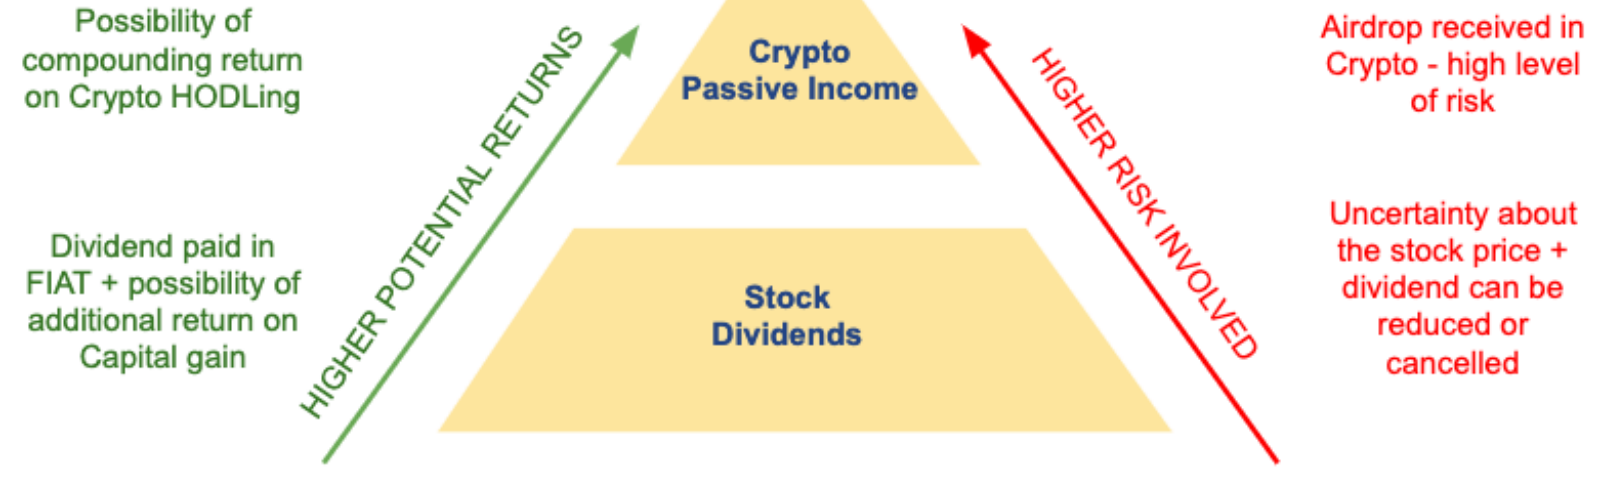 Dividend Paying Cryptocurrency Bitcoin Daily And Weekly Forecast -